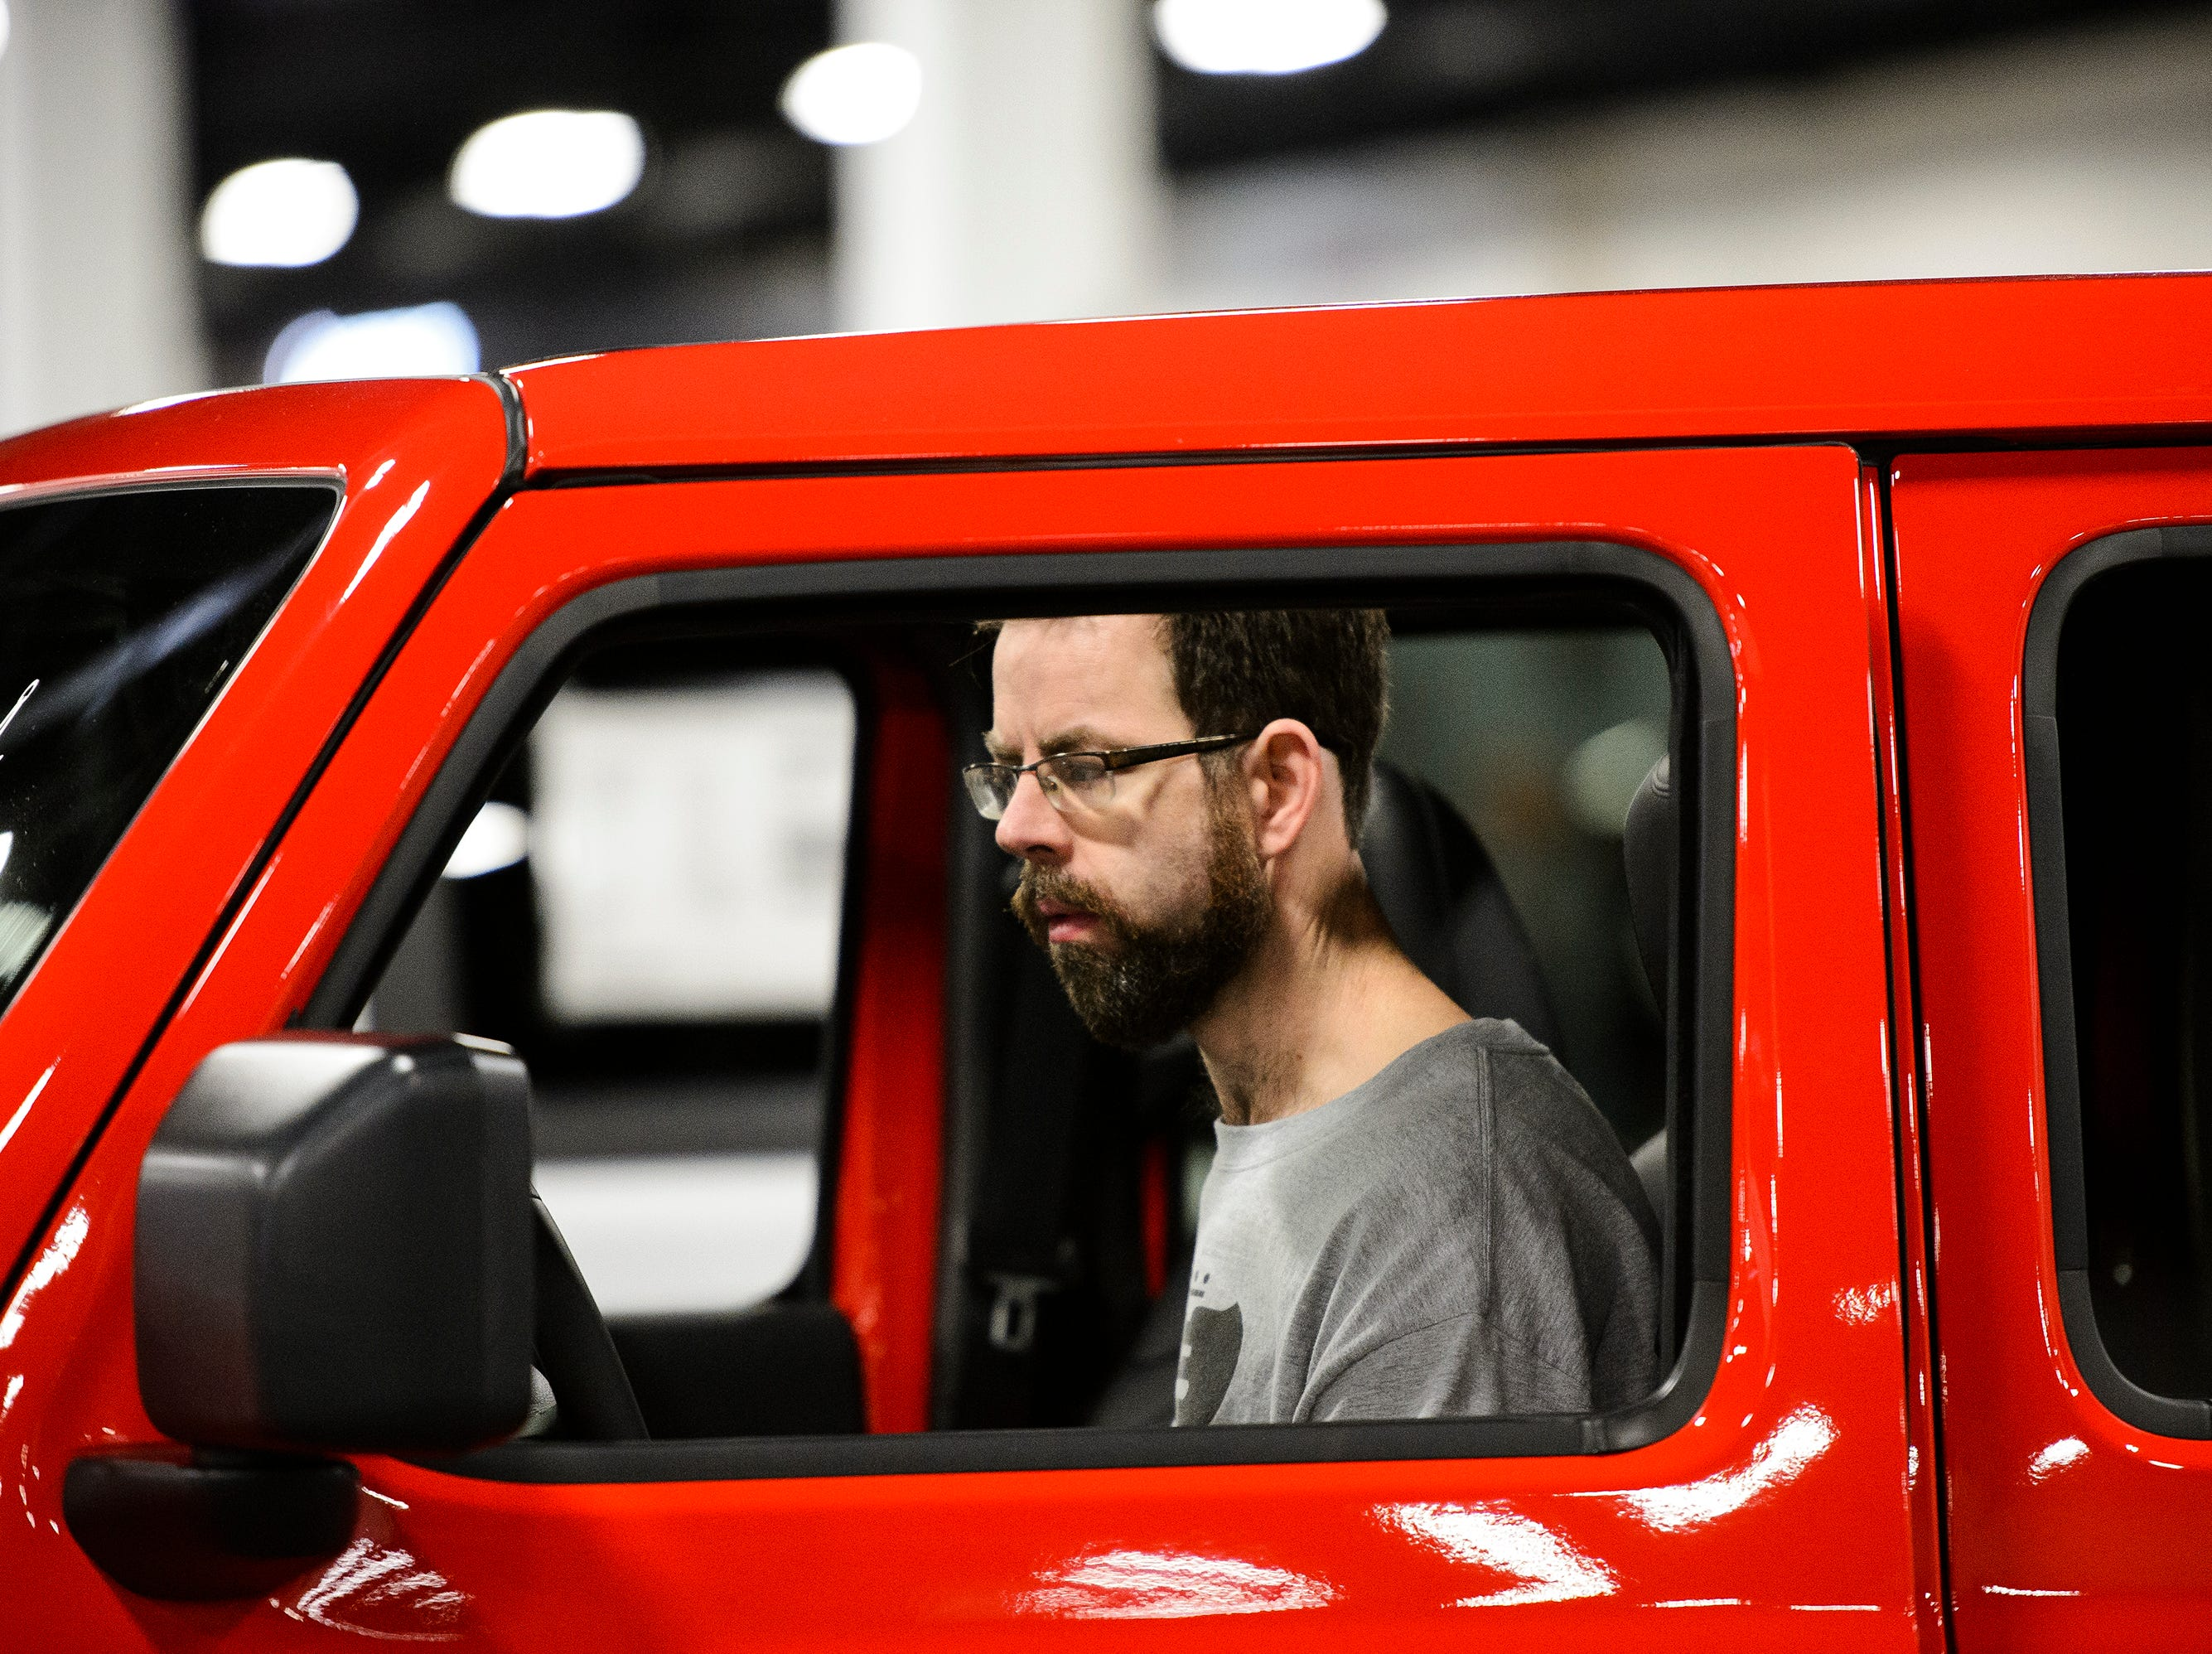 Timothy Brown checks out the interior of a vehicle during the South Carolina International Auto Show Friday, Jan. 11, 2019 at the Greenville Convention Center.